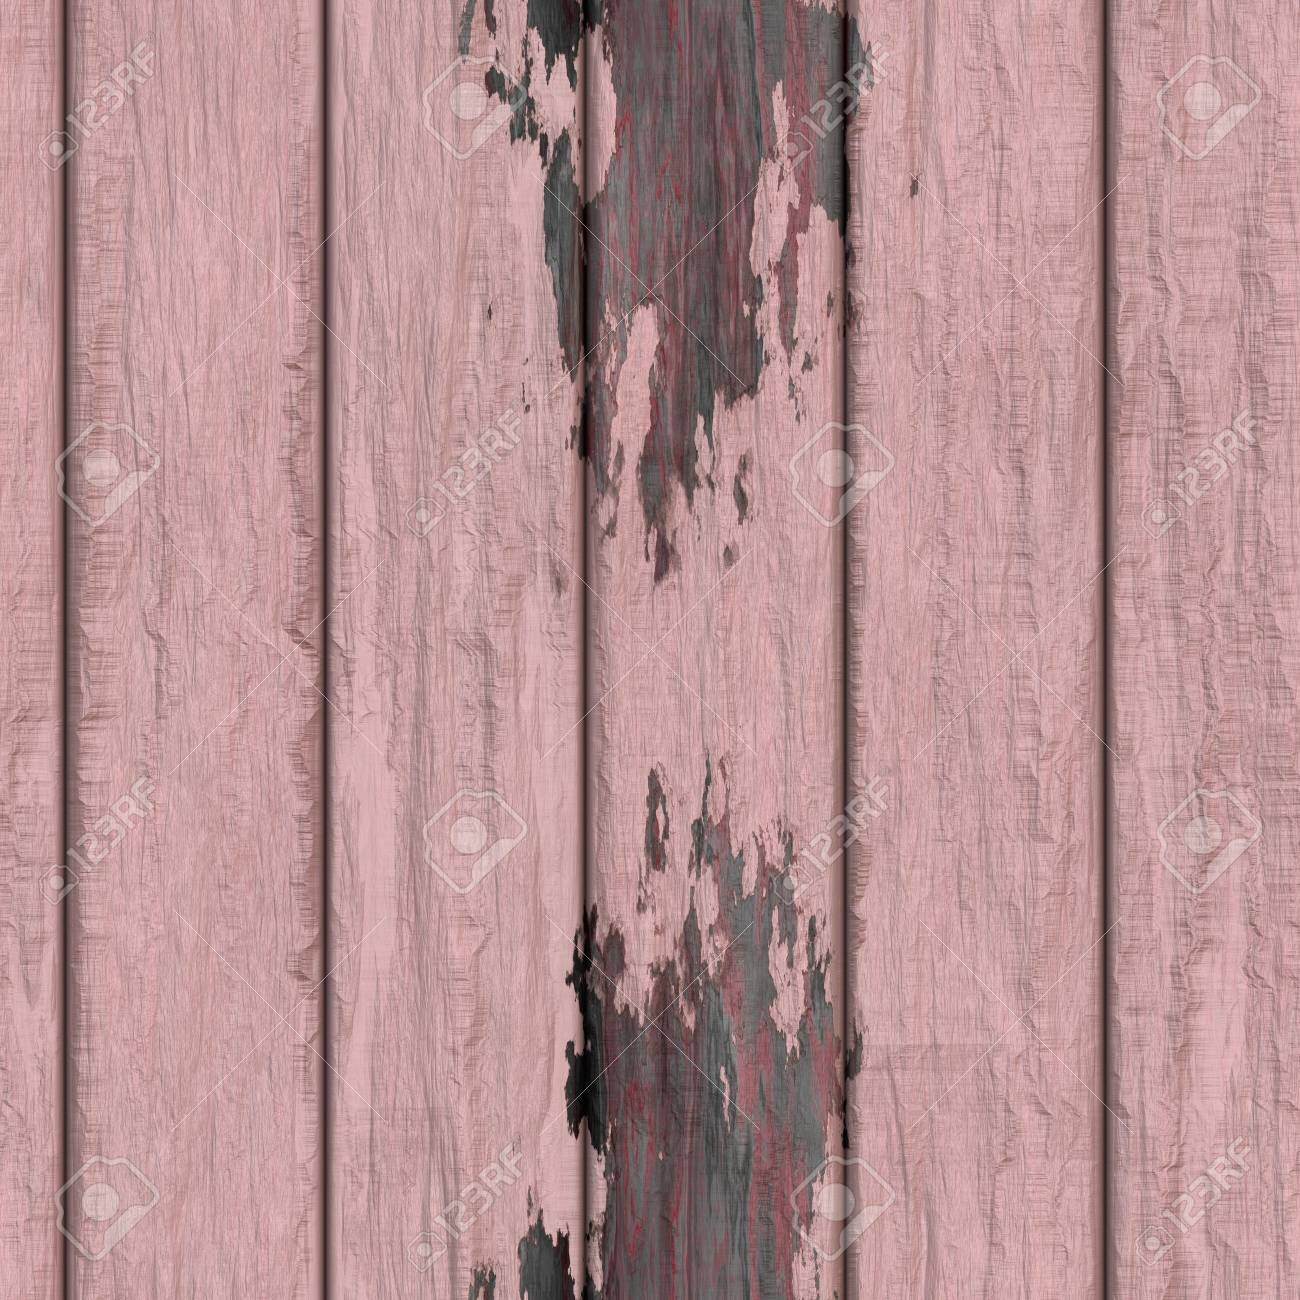 Seamless high quality high resolution of old wooden planks Stock Photo - 13854253